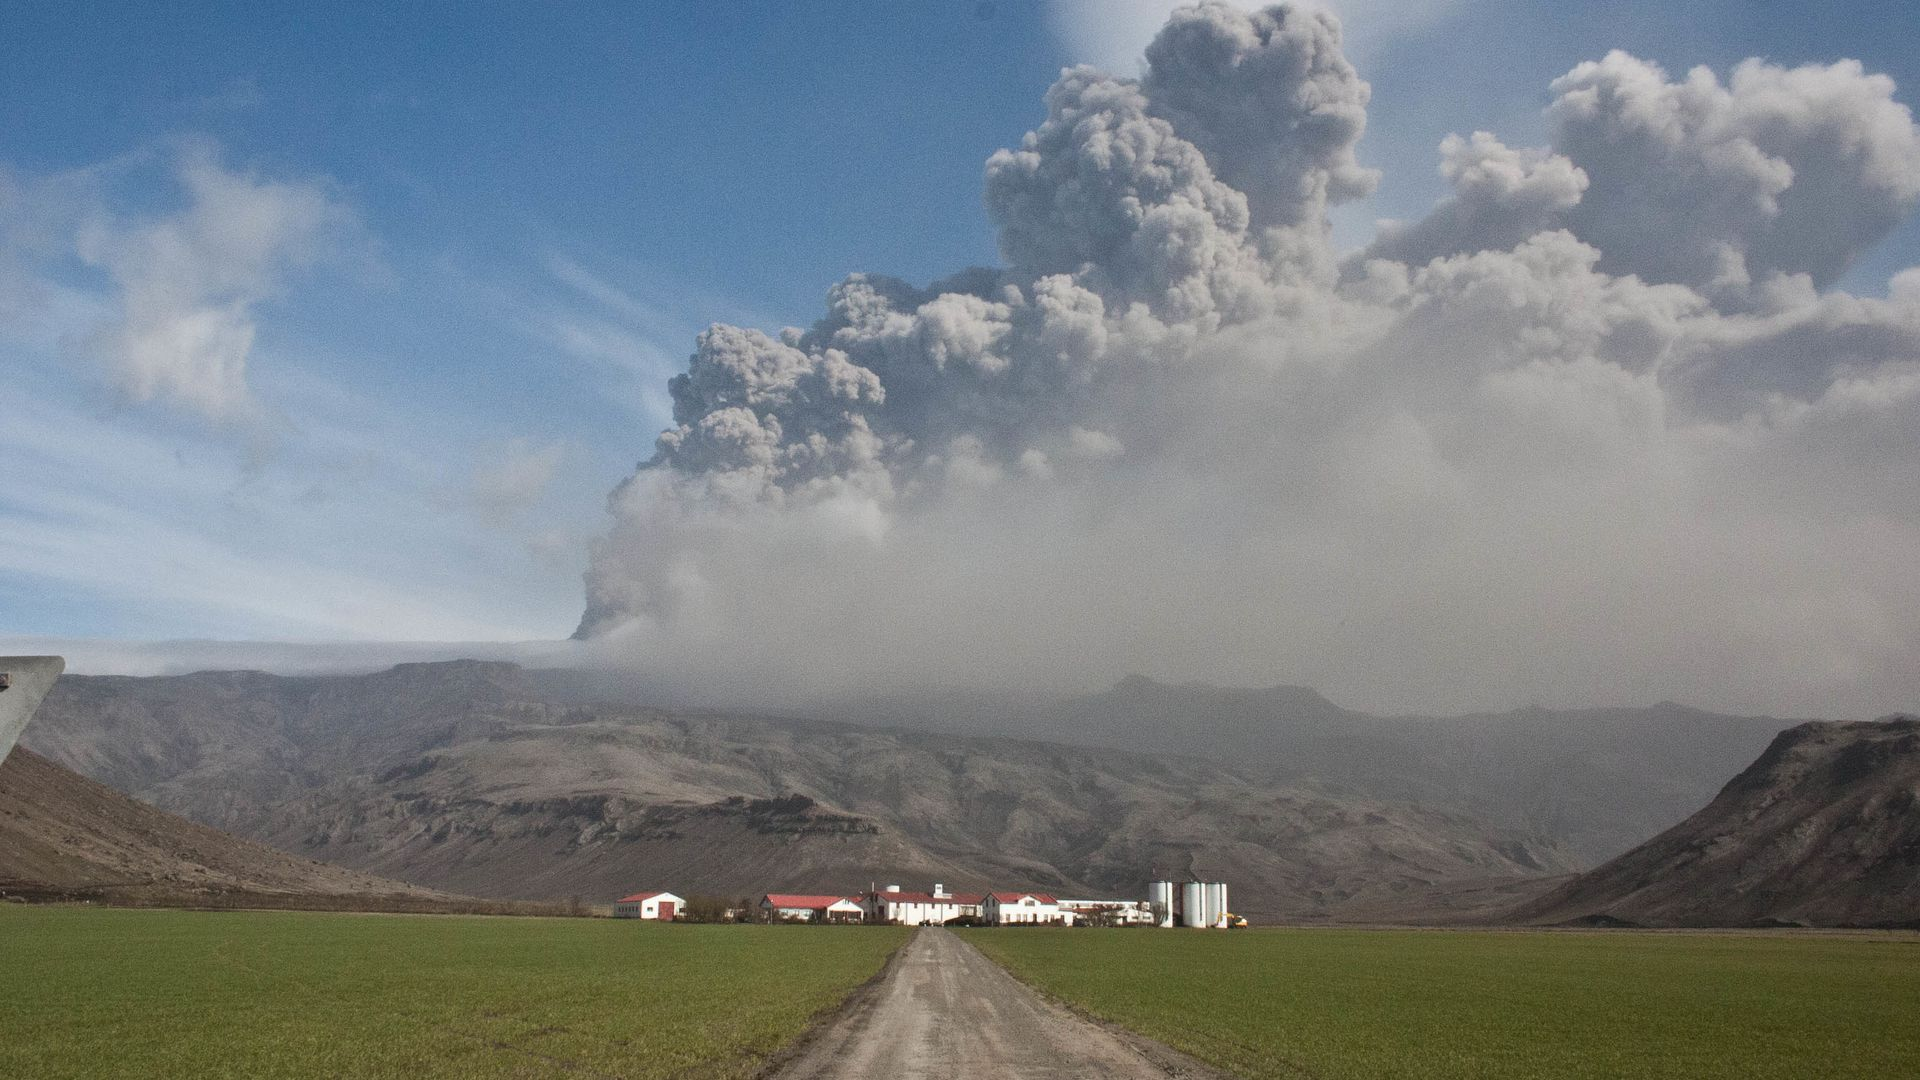 Ash cloud from the eruption at Eyjafjallajökull